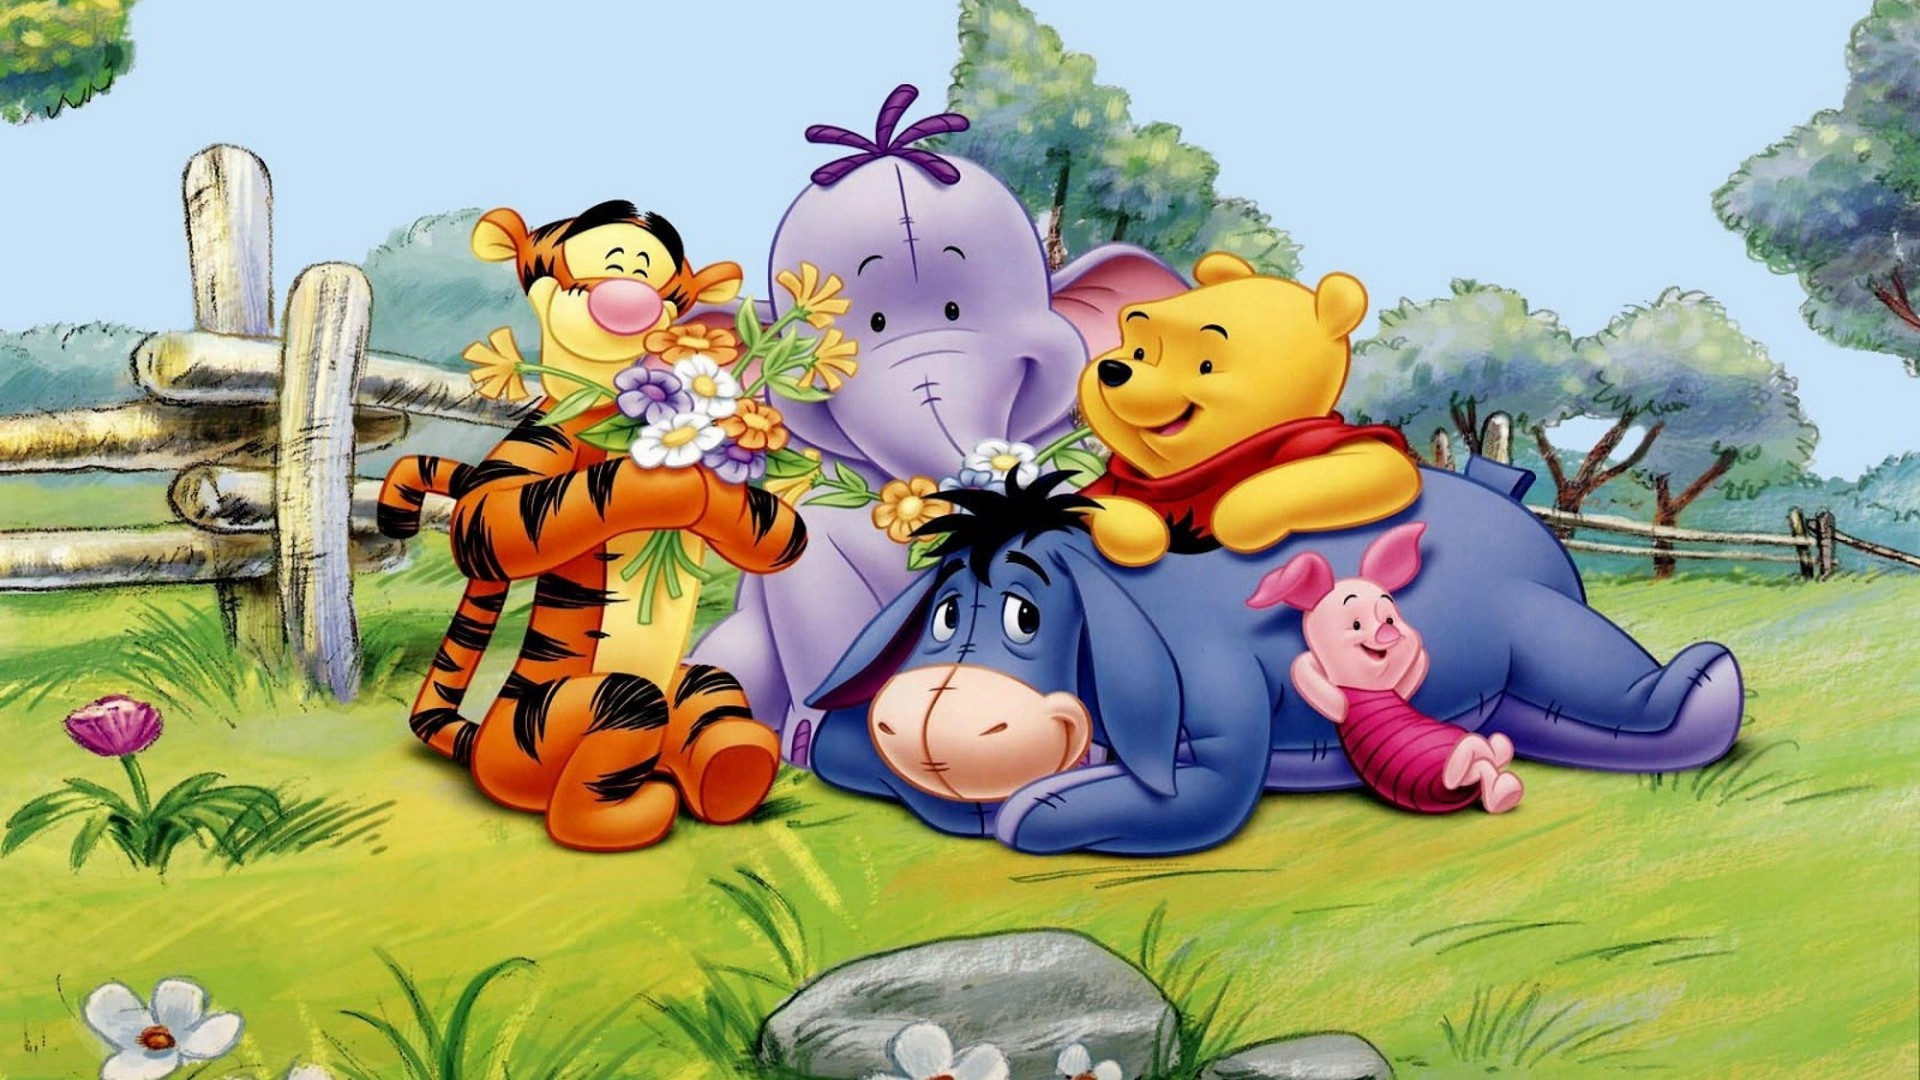 Res: 1920x1080, Winnie The Pooh Tigger Eeyore Piglet And Elephant Spring HD Wallpaper